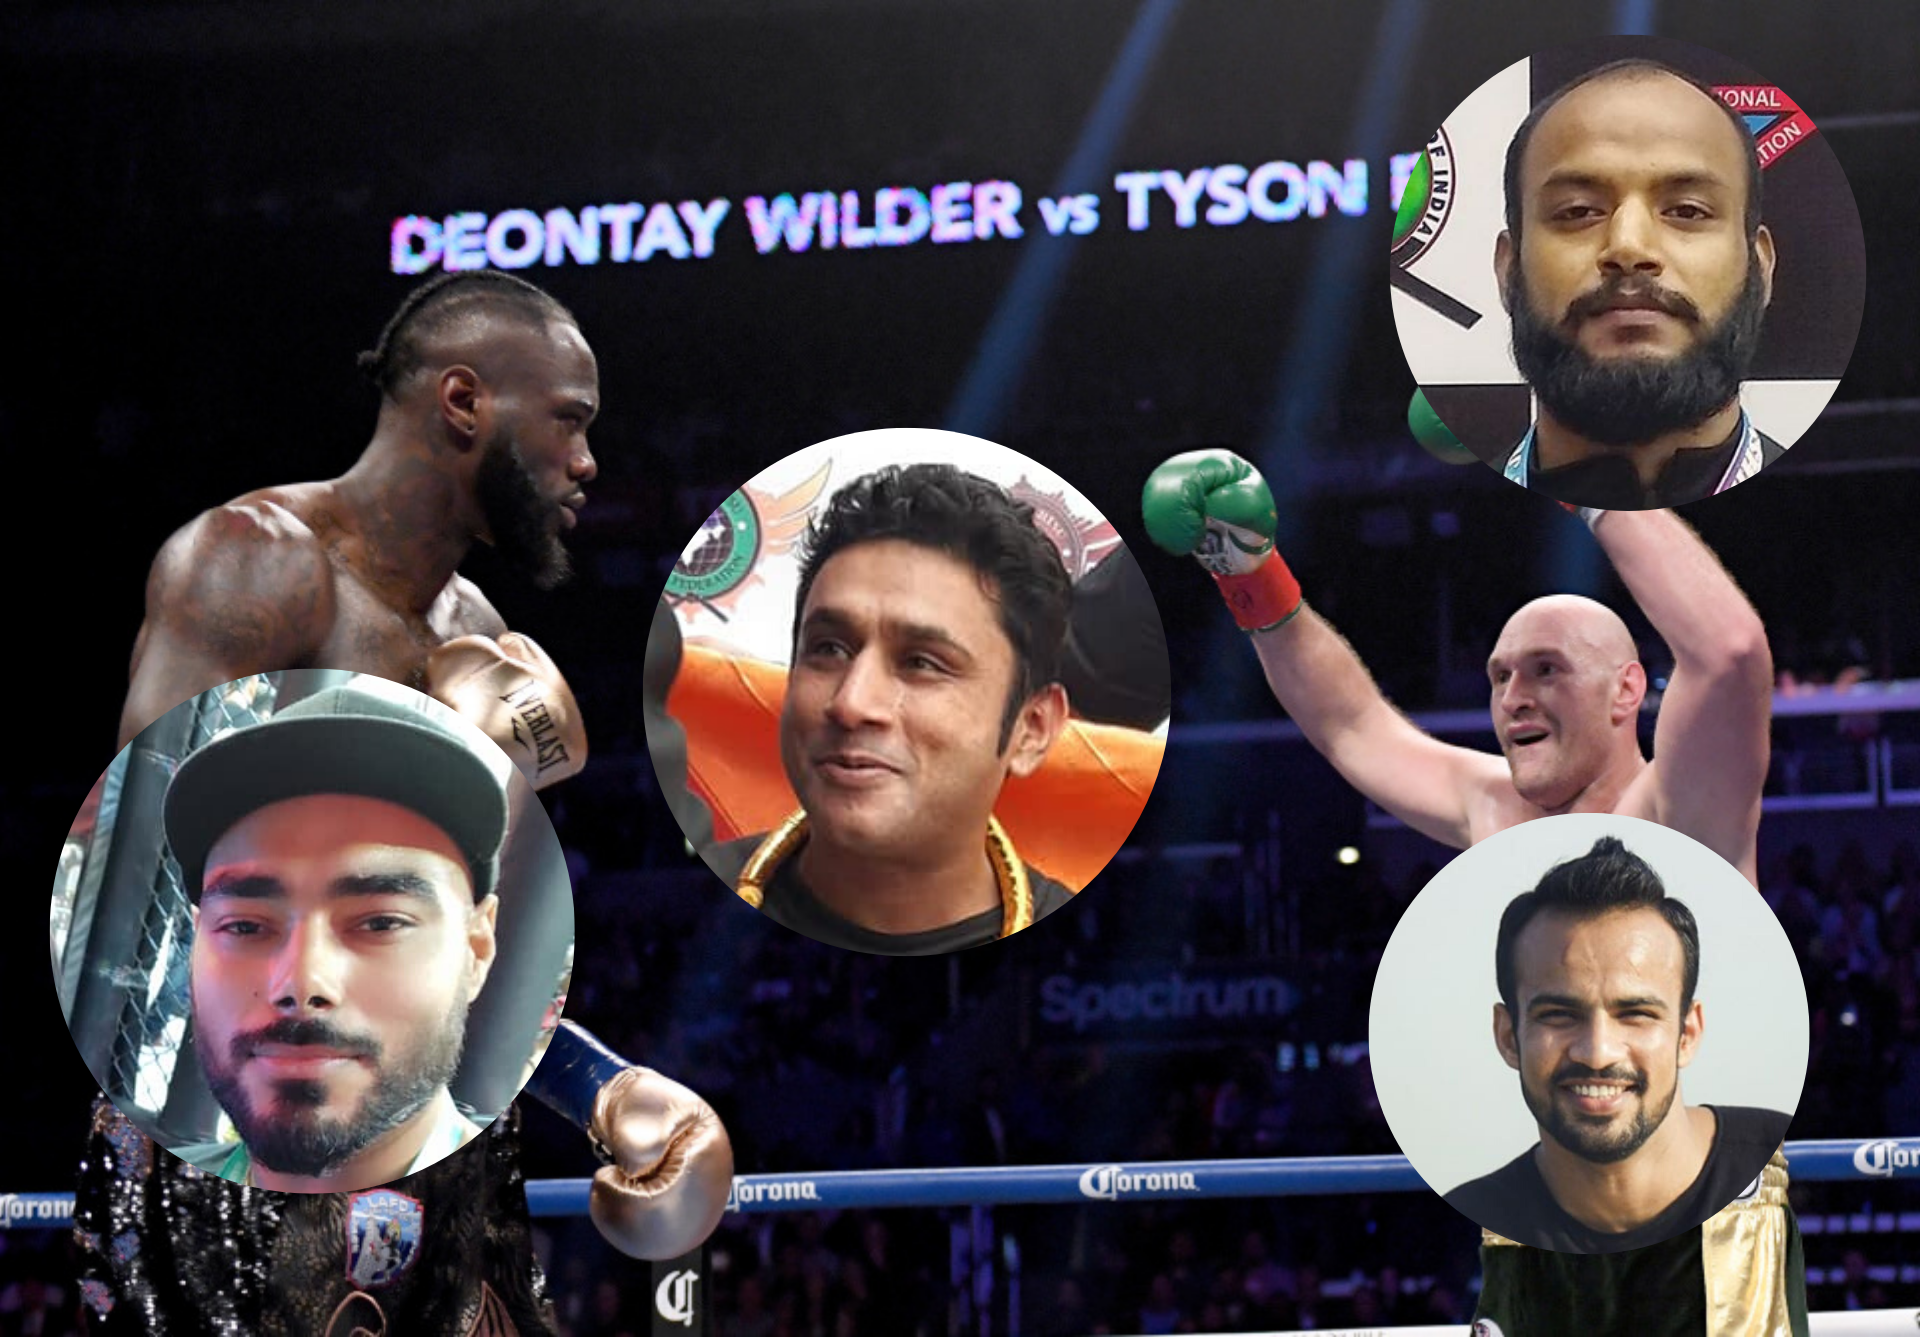 Indian MMA community give predictions for Wilder vs Fury 2 - Wilder